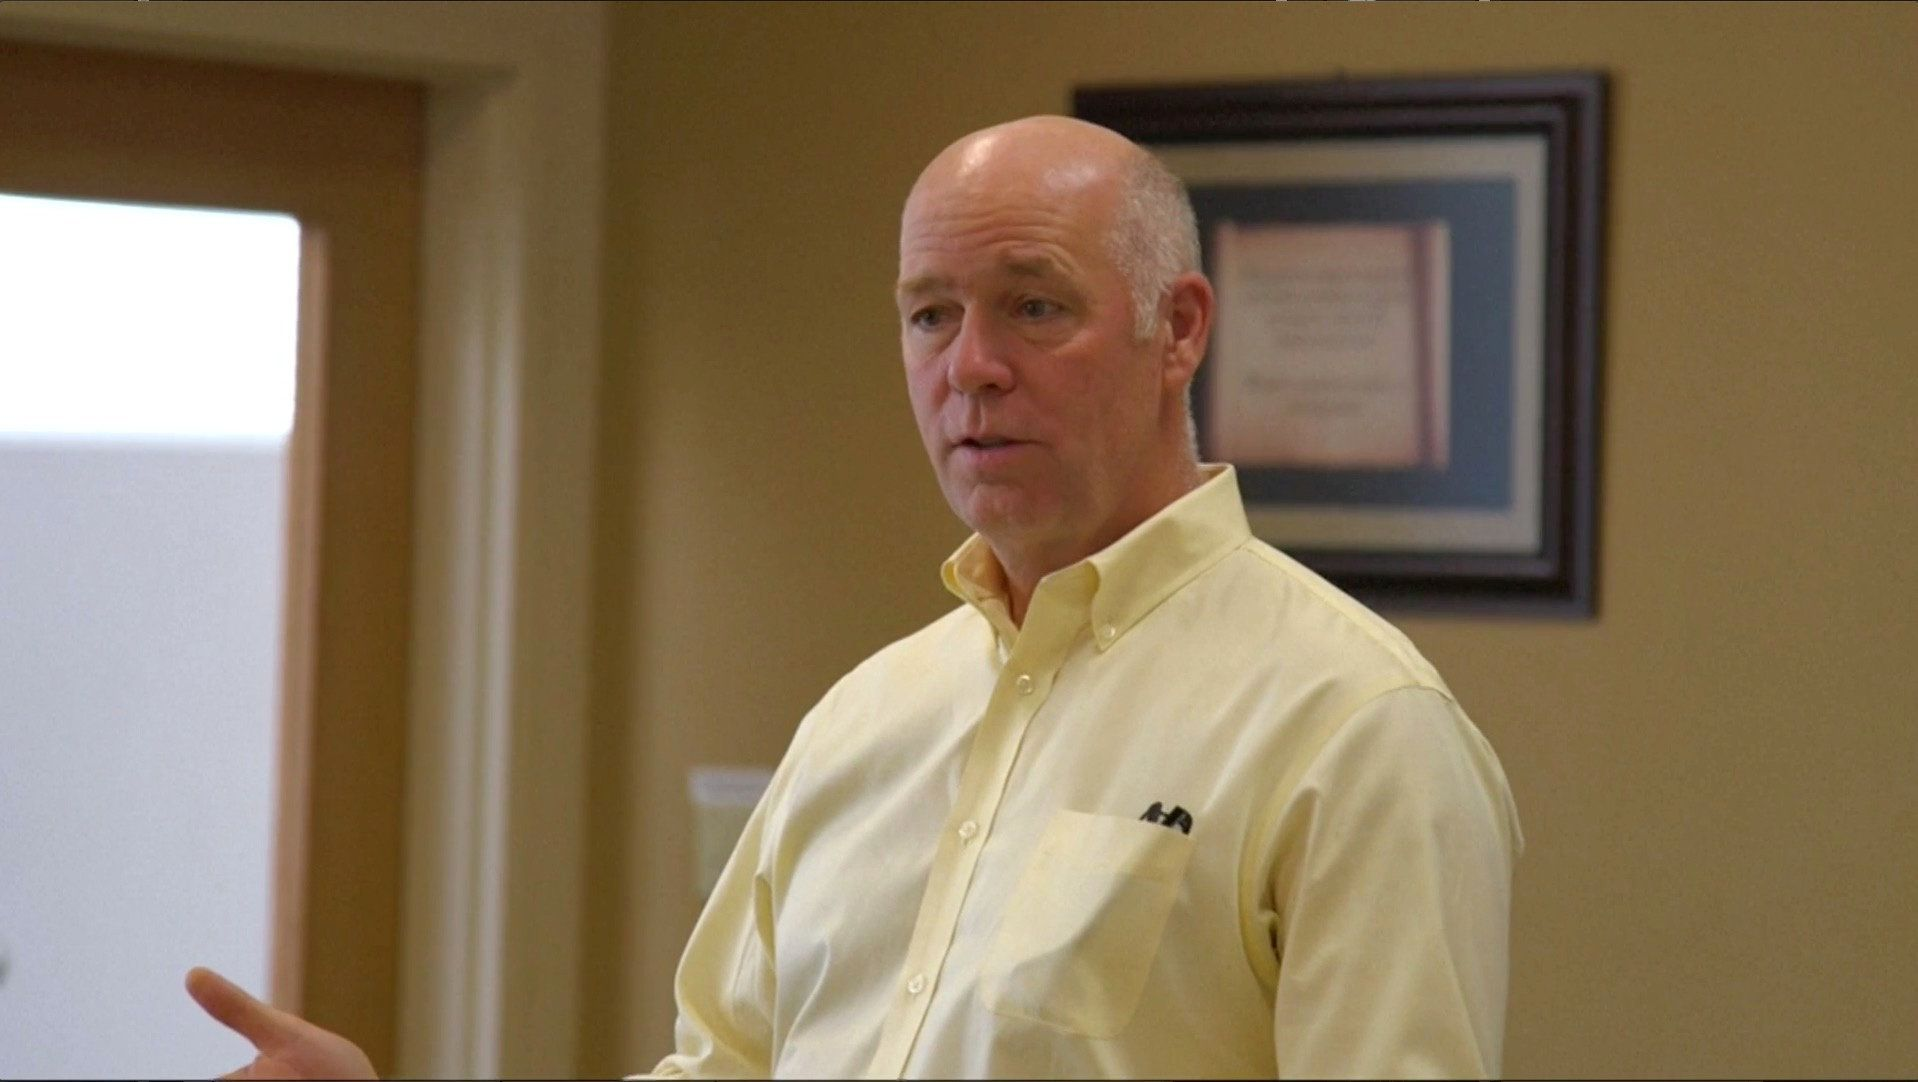 Montana Republican congressional candidate Greg Gianforte speaking to voters while campaigning for a special election in Missoula, Montana, U.S. in this still frame taken from May 24, 2017 video. REUTERS/Justin Mitchell